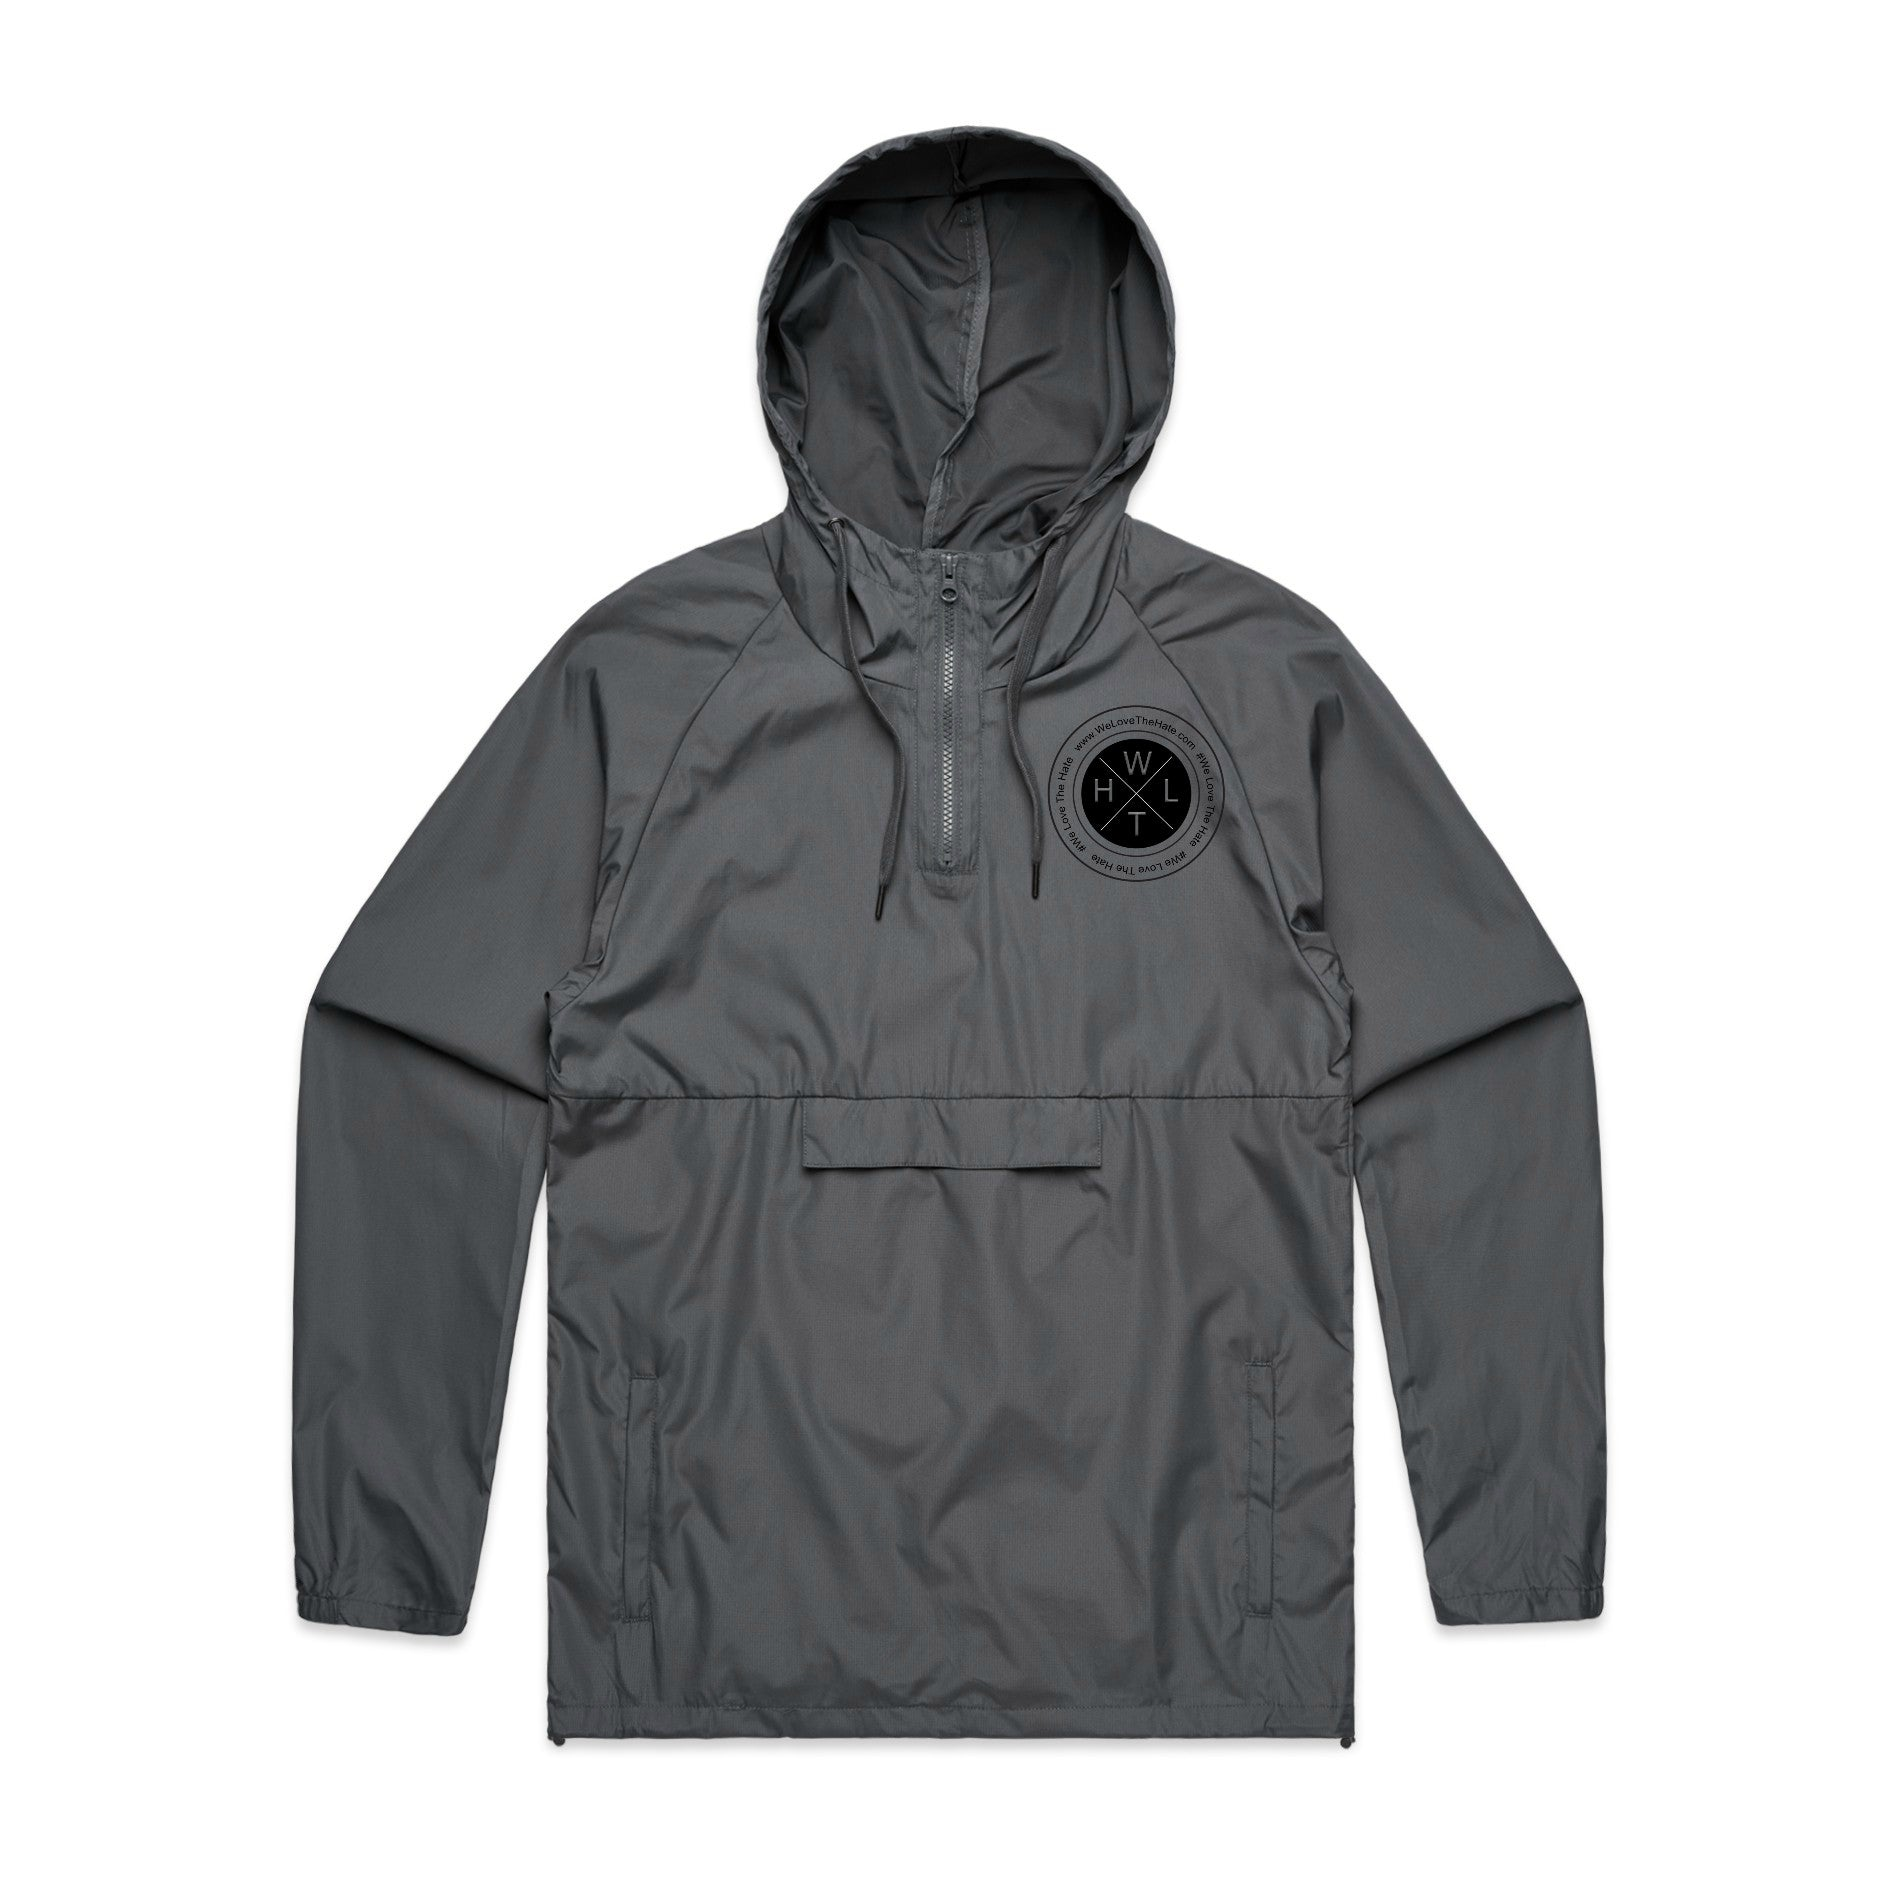 Charcoal Windbreaker